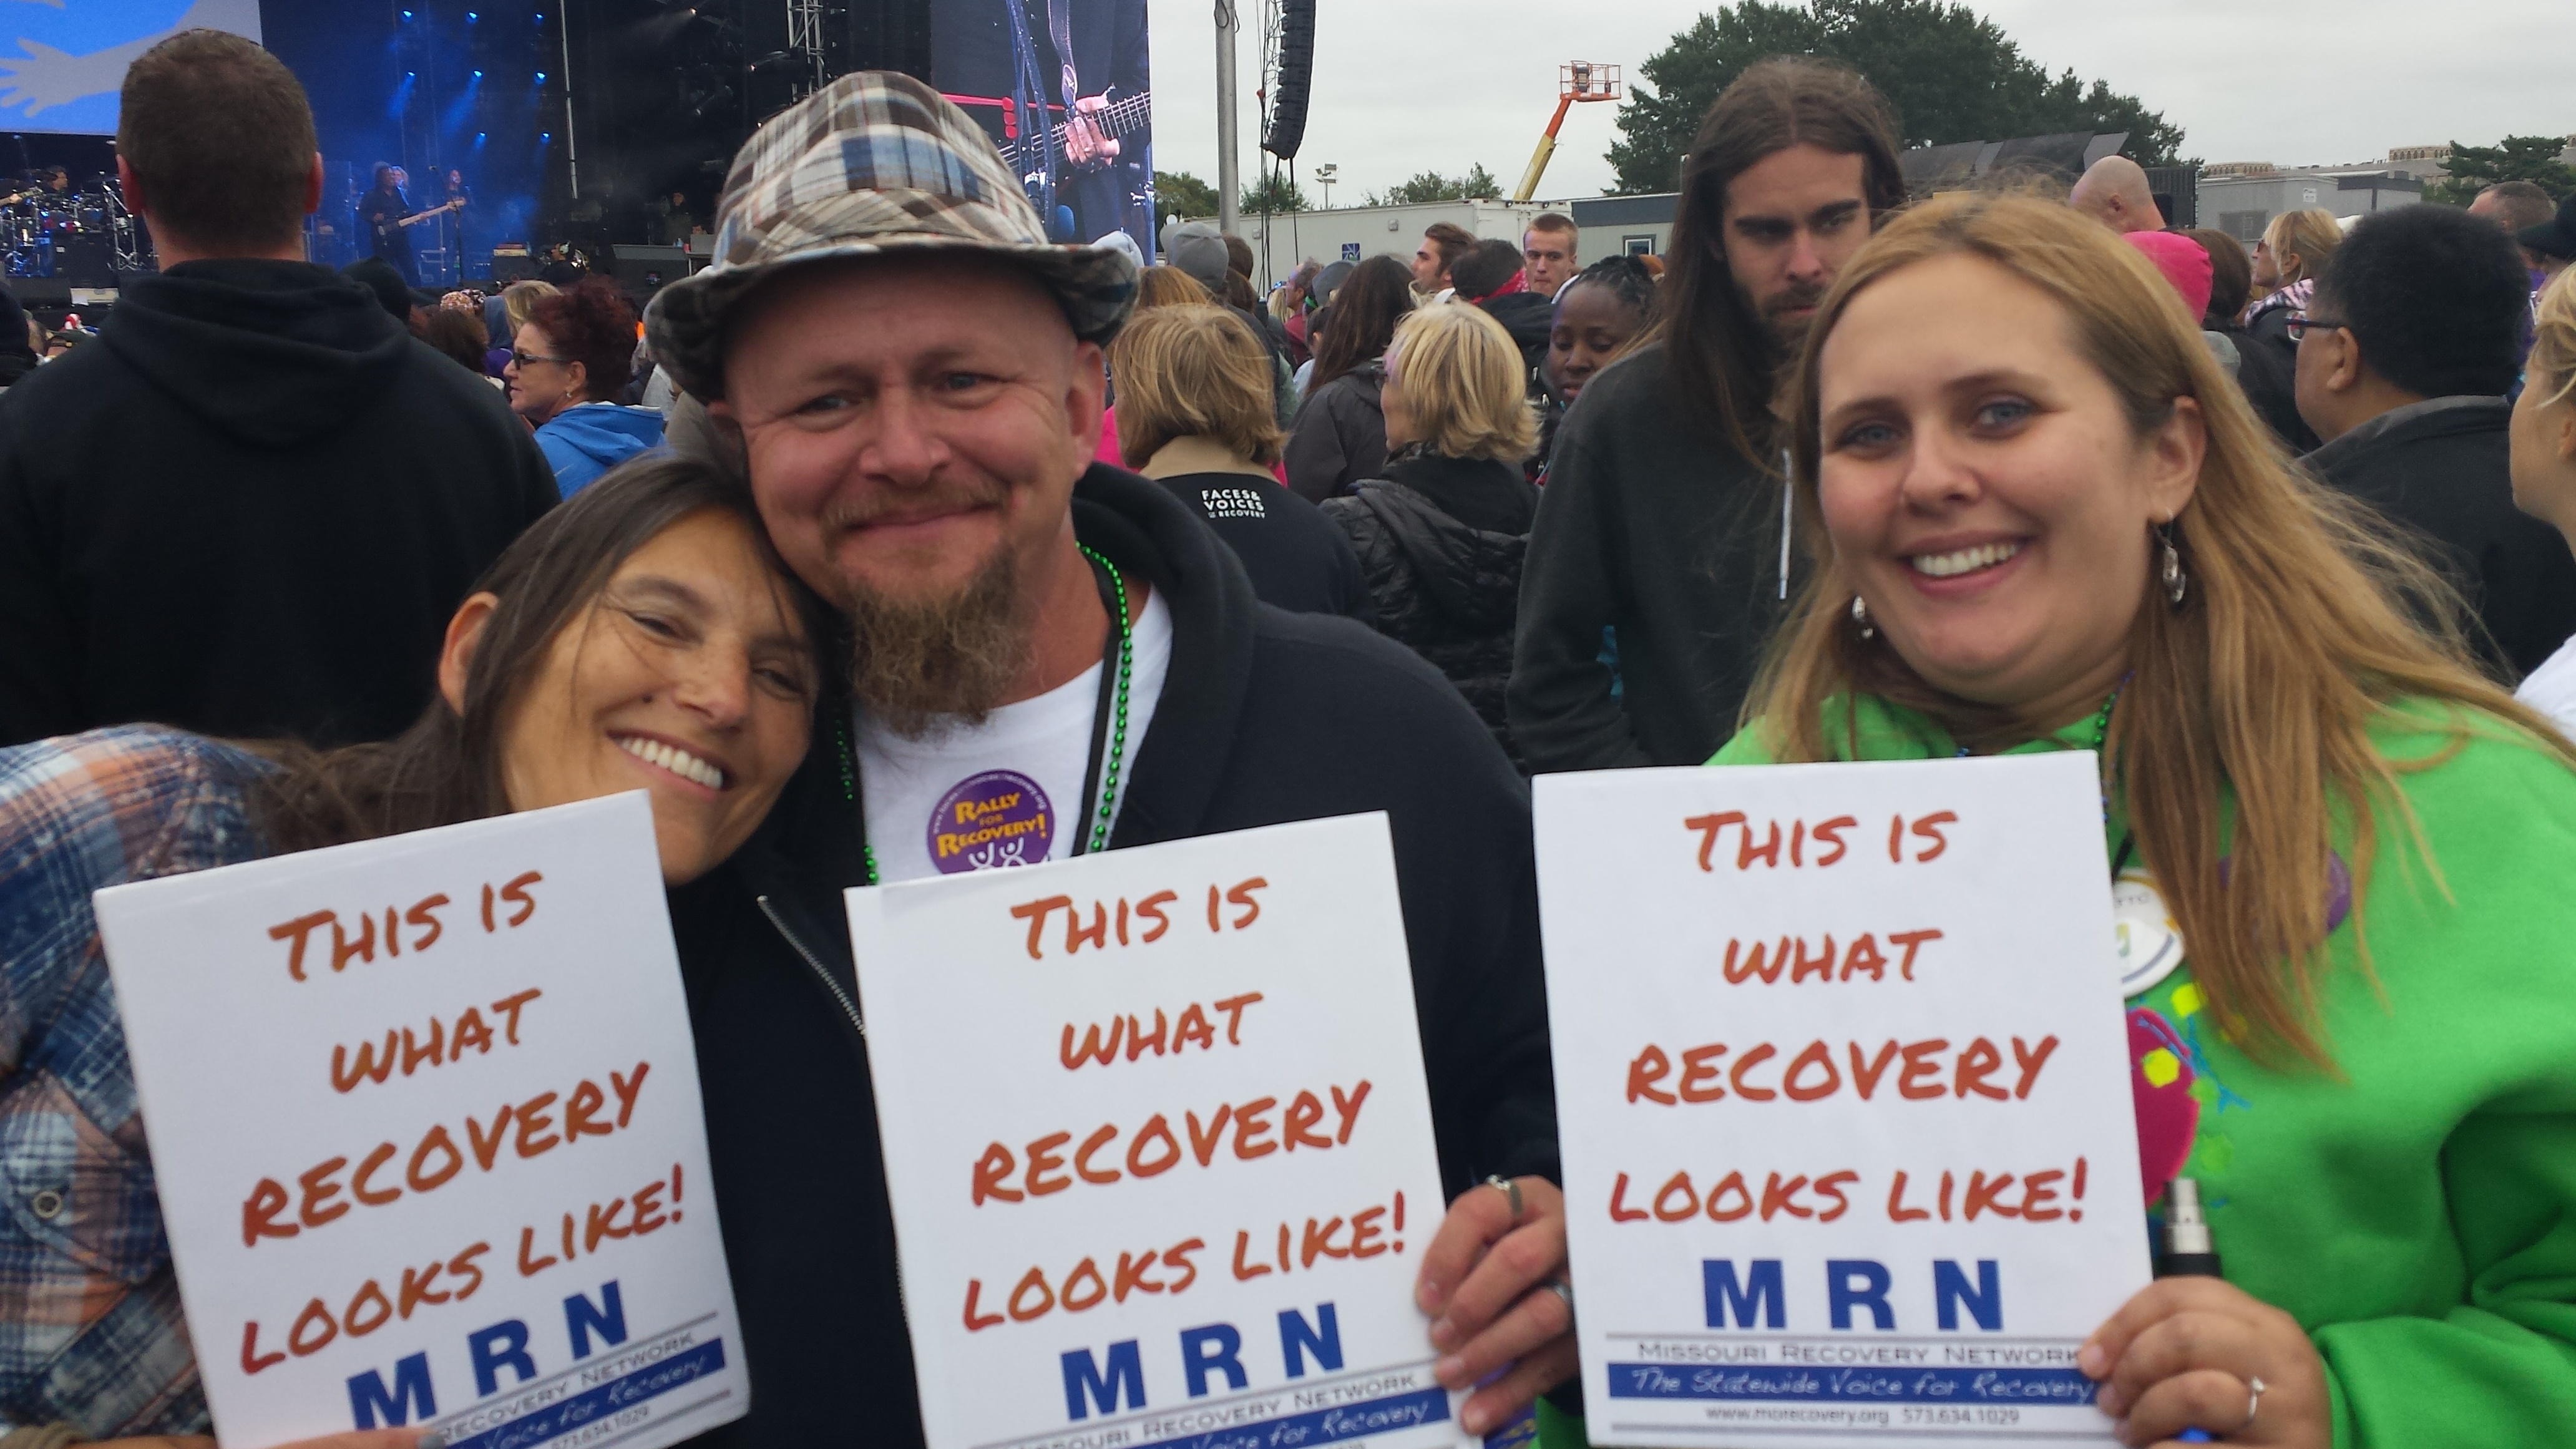 It's Time for Those in Recovery to be Visible and Vocal